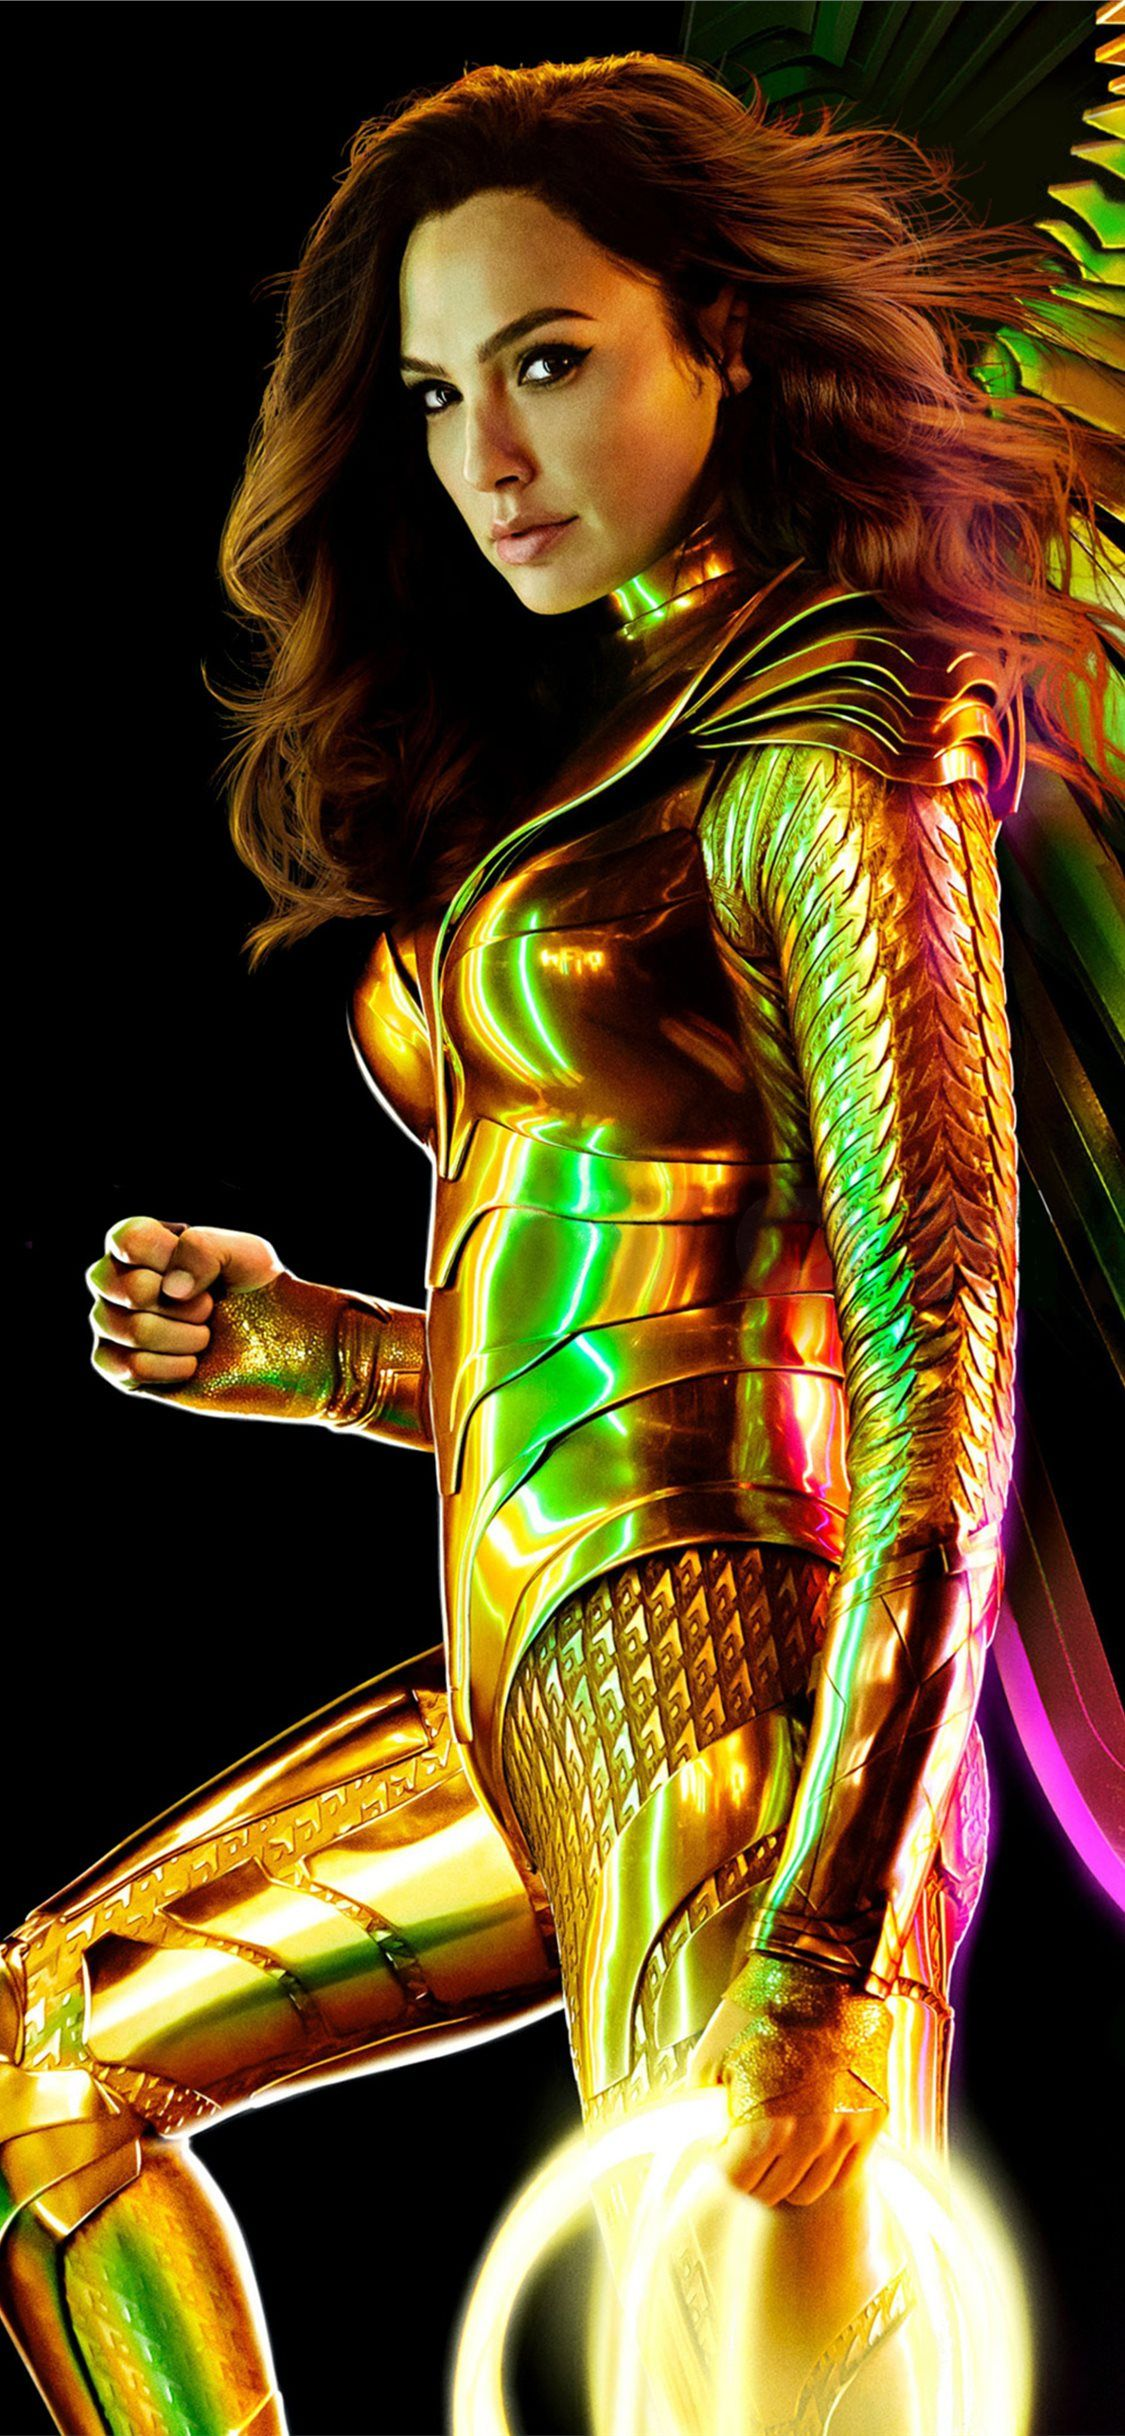 Wonder Woman 1984 4k 2020 Wonder Woman 1984 Wonder Woman 2 Wonder Woman Movies 202 In 2020 Gal Gadot Wonder Woman Wonder Woman Movie Iphone Wallpaper Wonder Woman